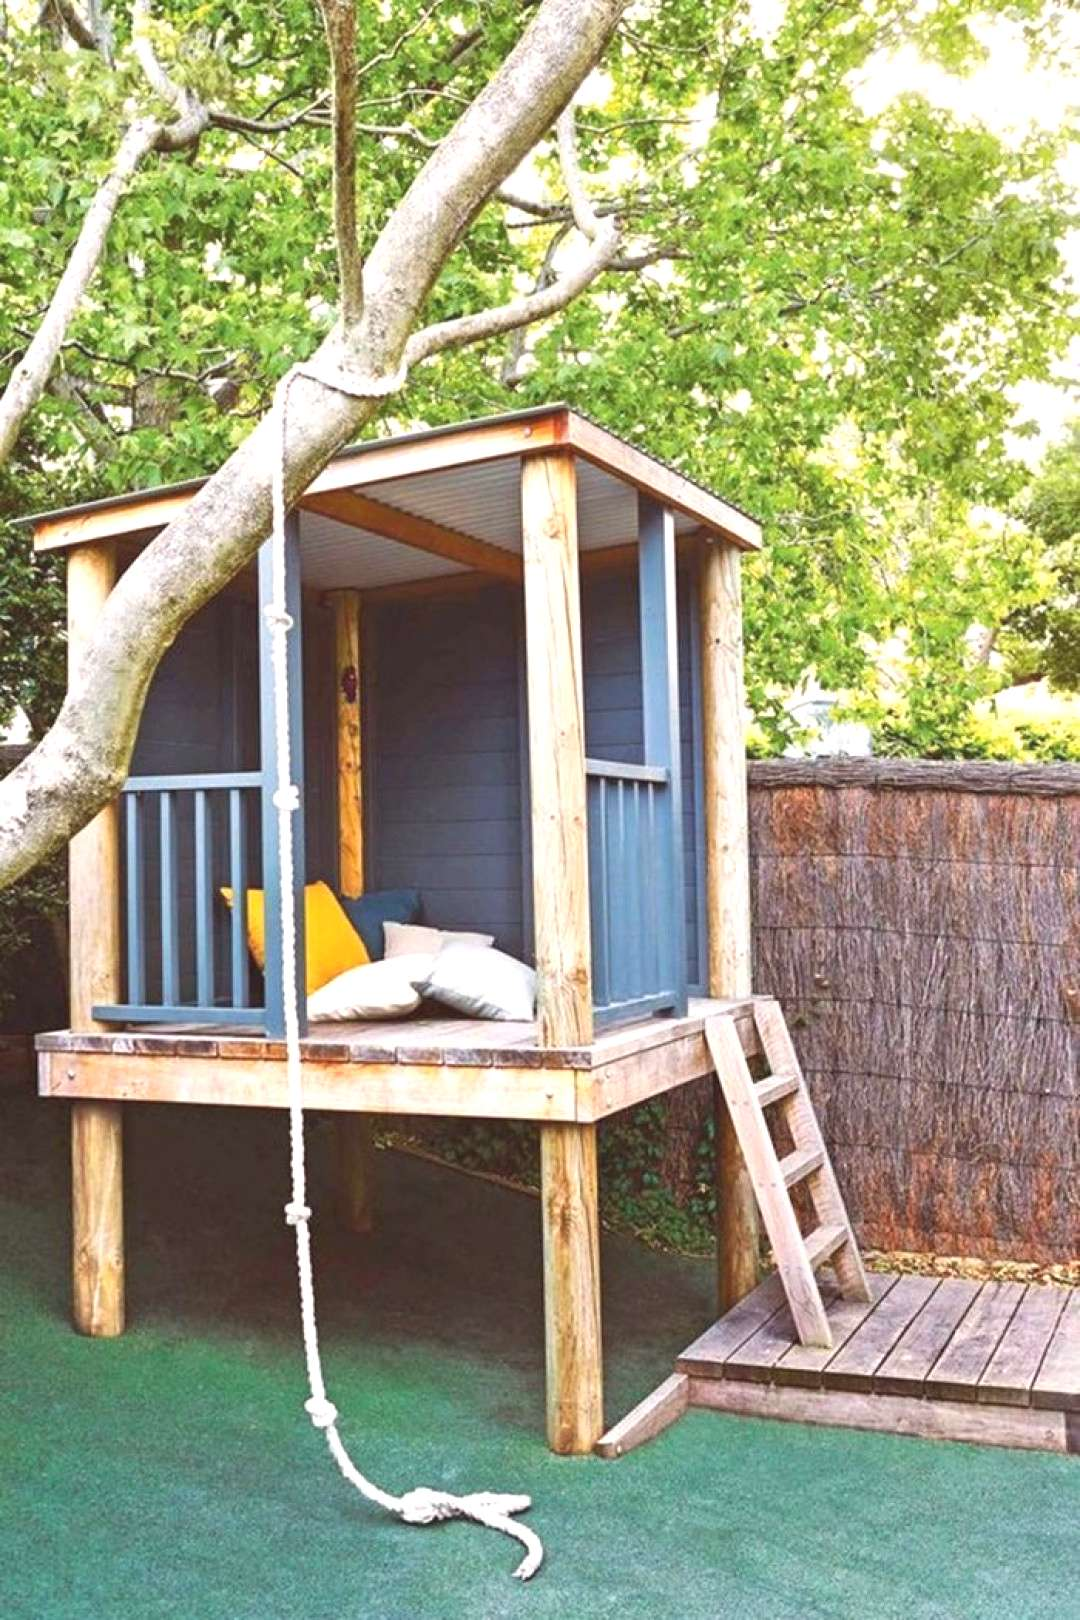 The Best Playhouses to Live Childhood Adventures - Petit amp Small - -